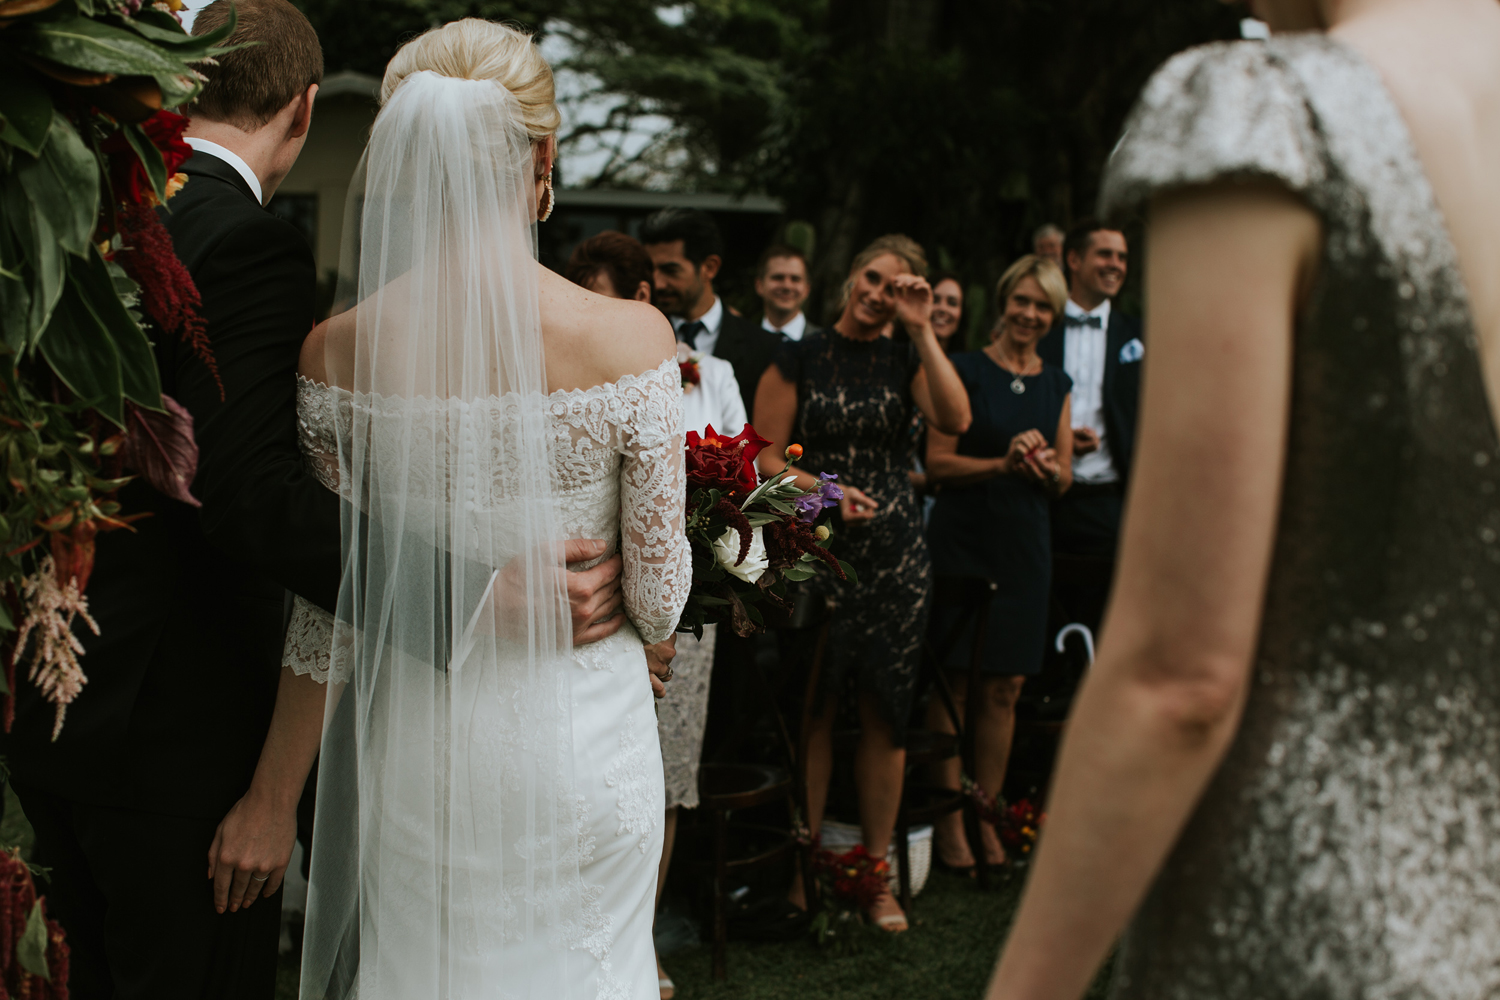 506-byron_bay_wedding_photographer.jpg